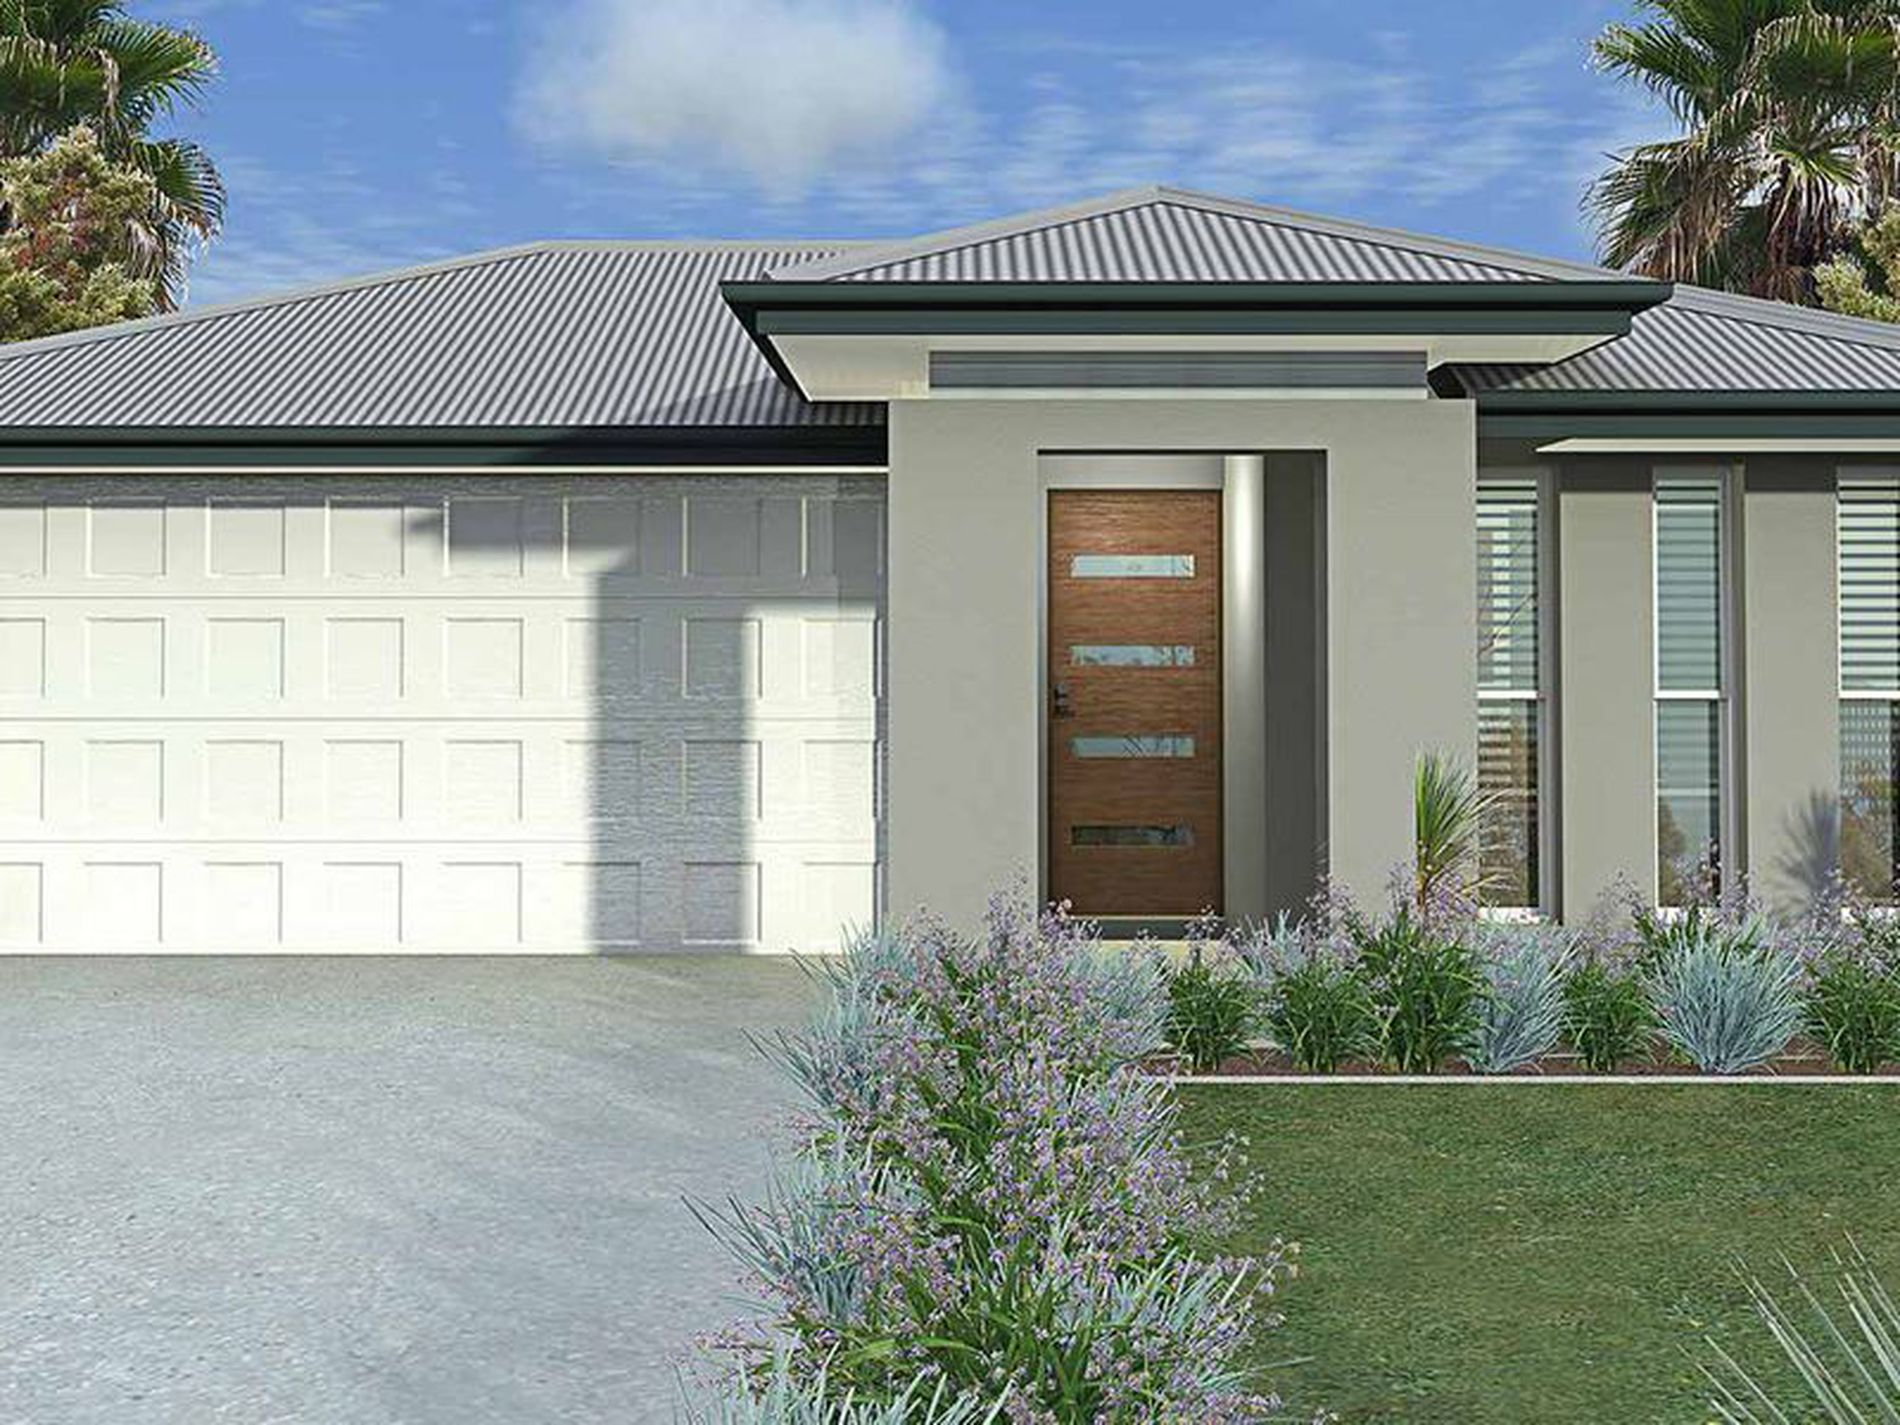 Lot 252 Mount Huntley Street, Park Ridge